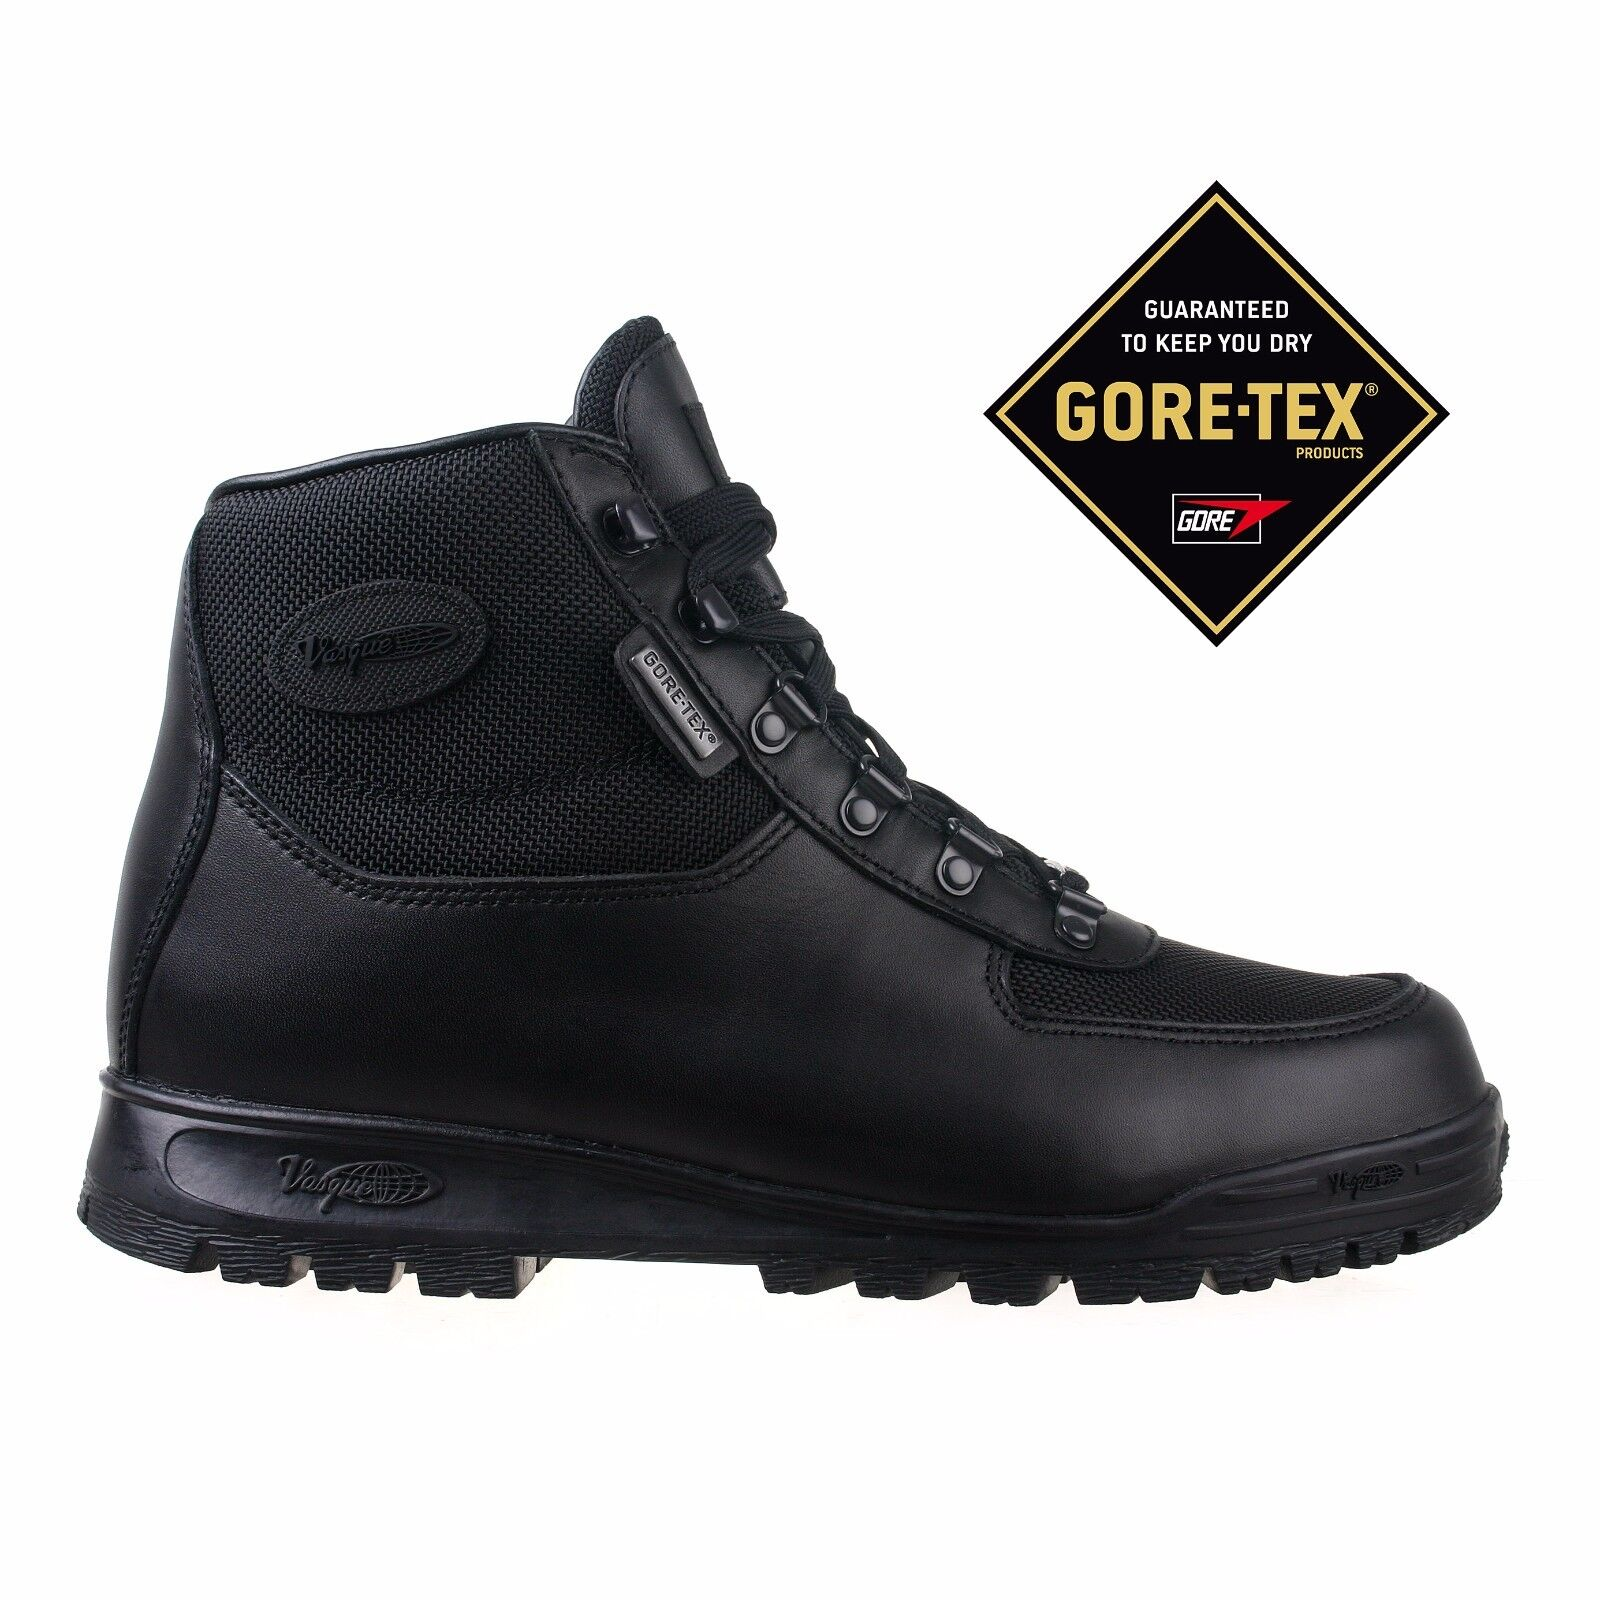 5d5793b10b029 Vasque Mens Boots Gore-tex Black Skywalk Leather 7052